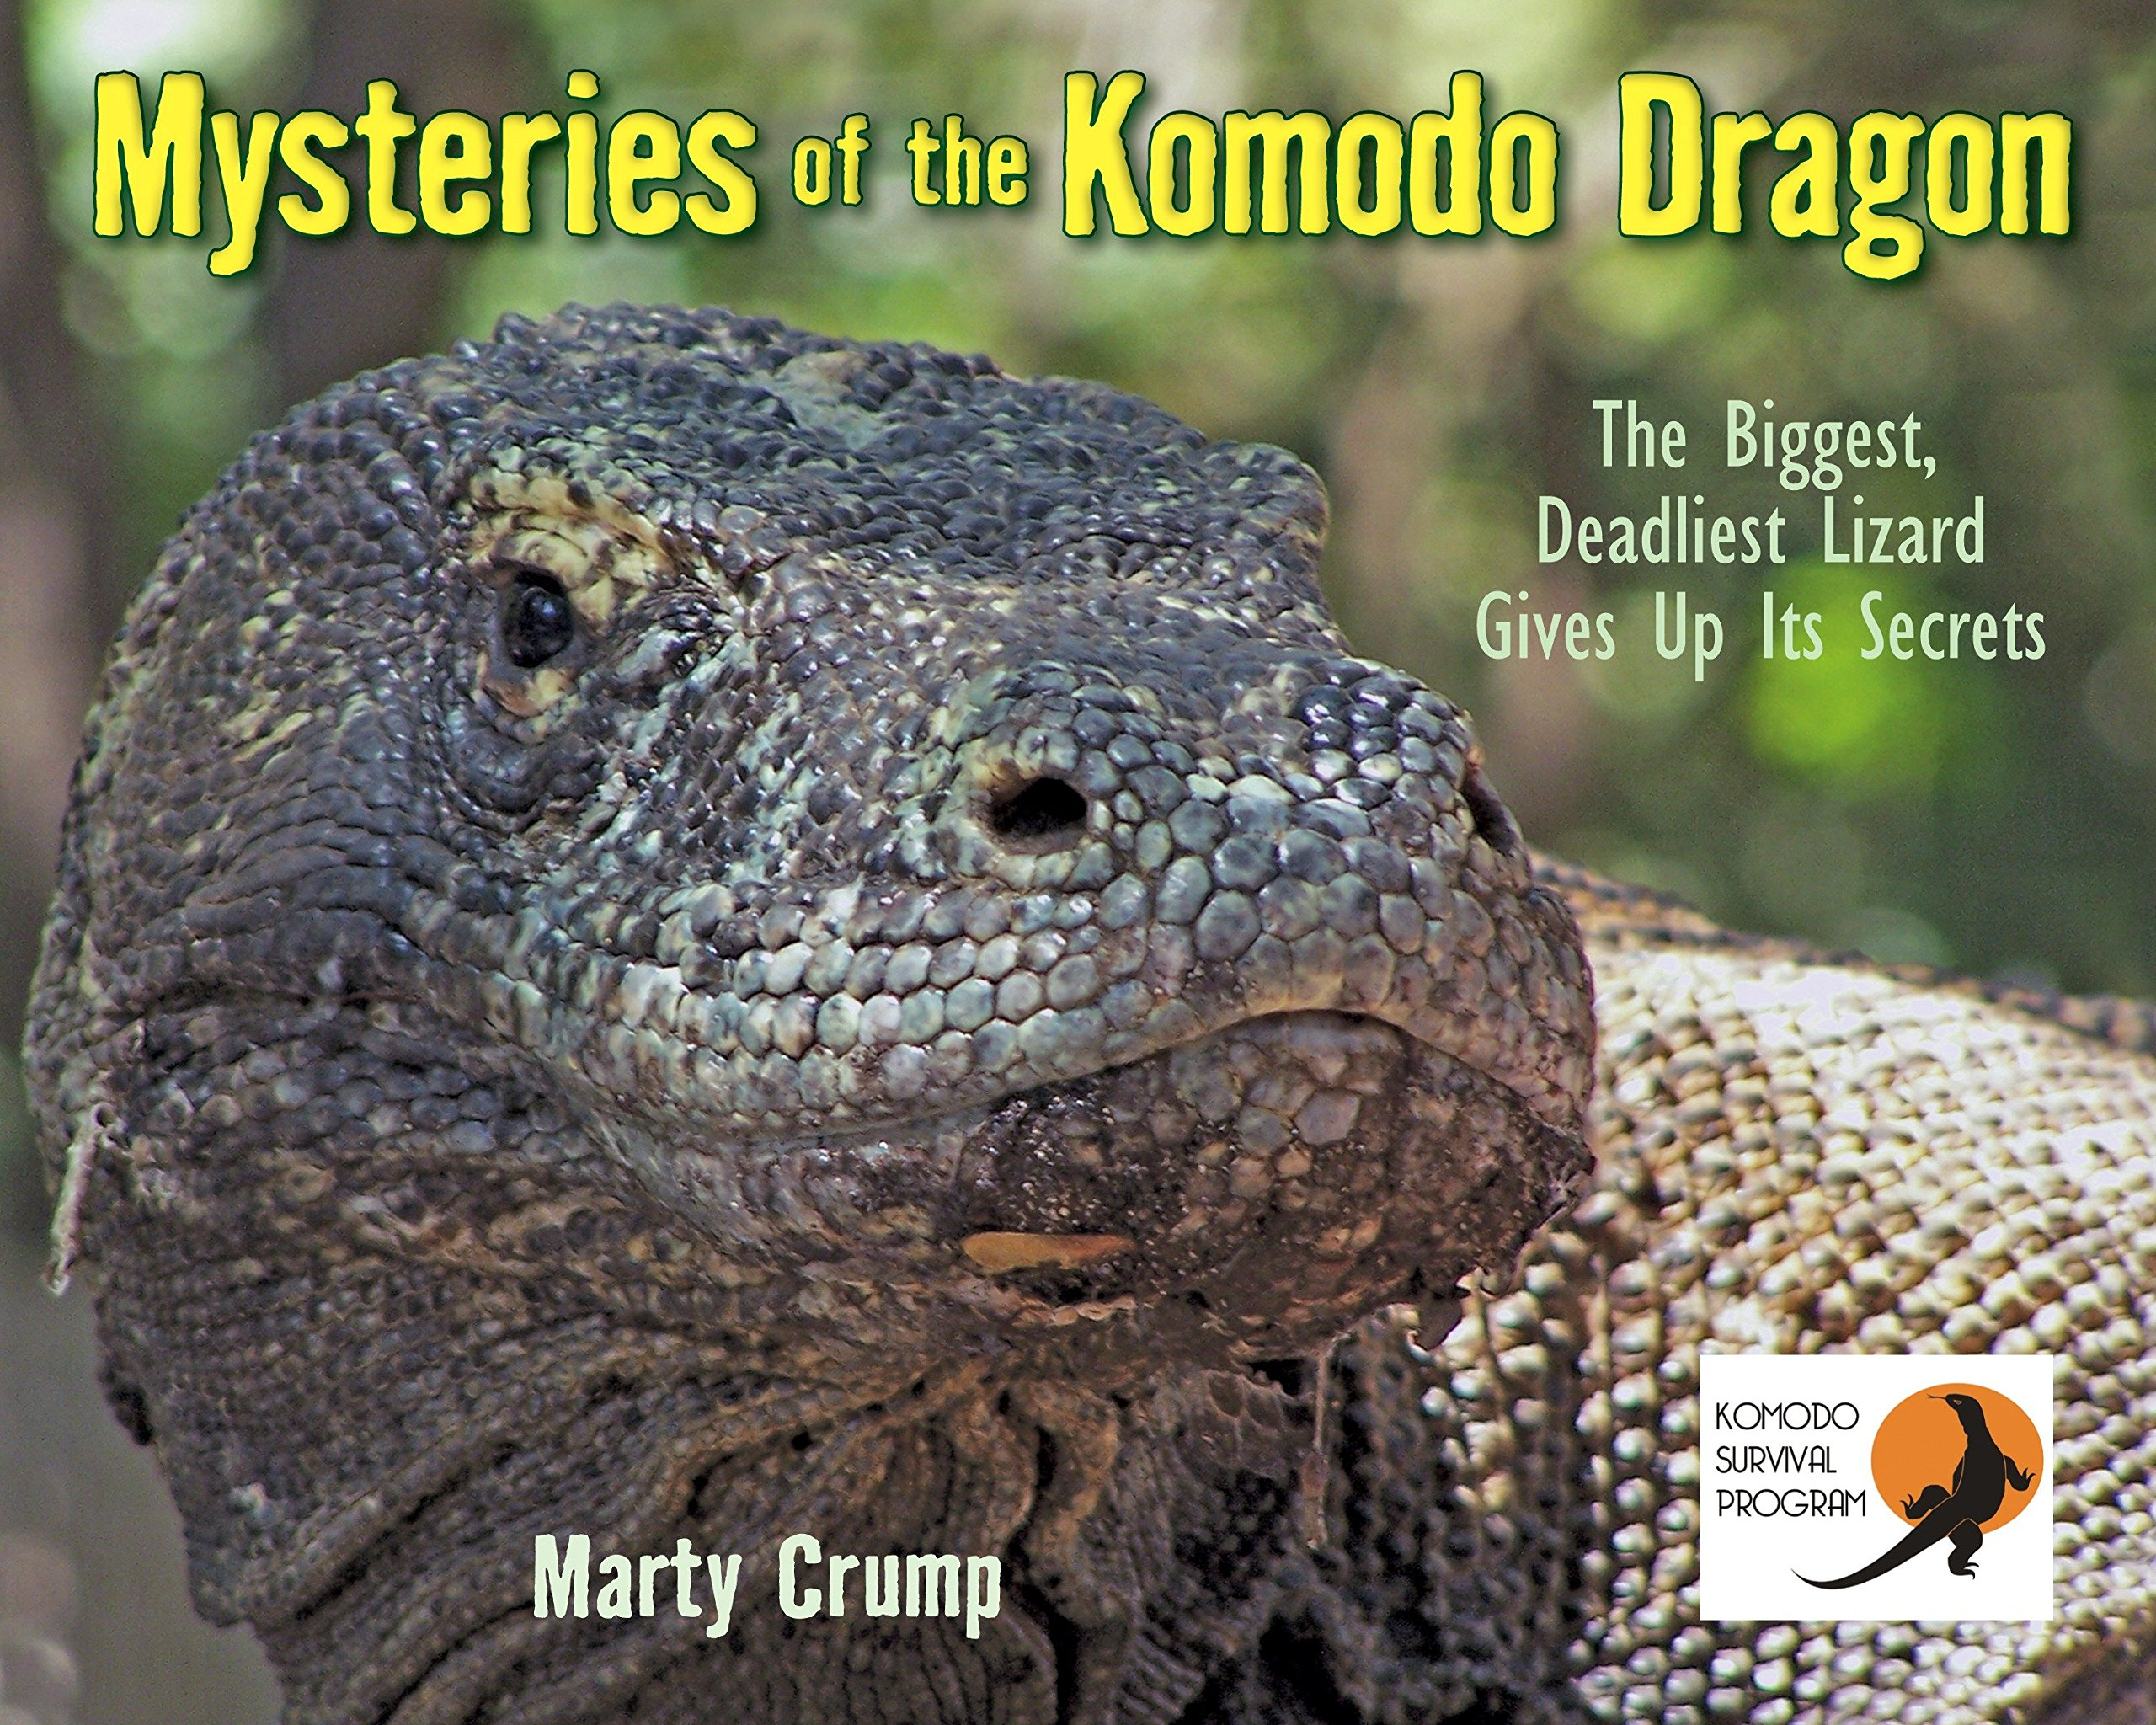 Mysteries of the Komodo Dragon: The Biggest, Deadliest